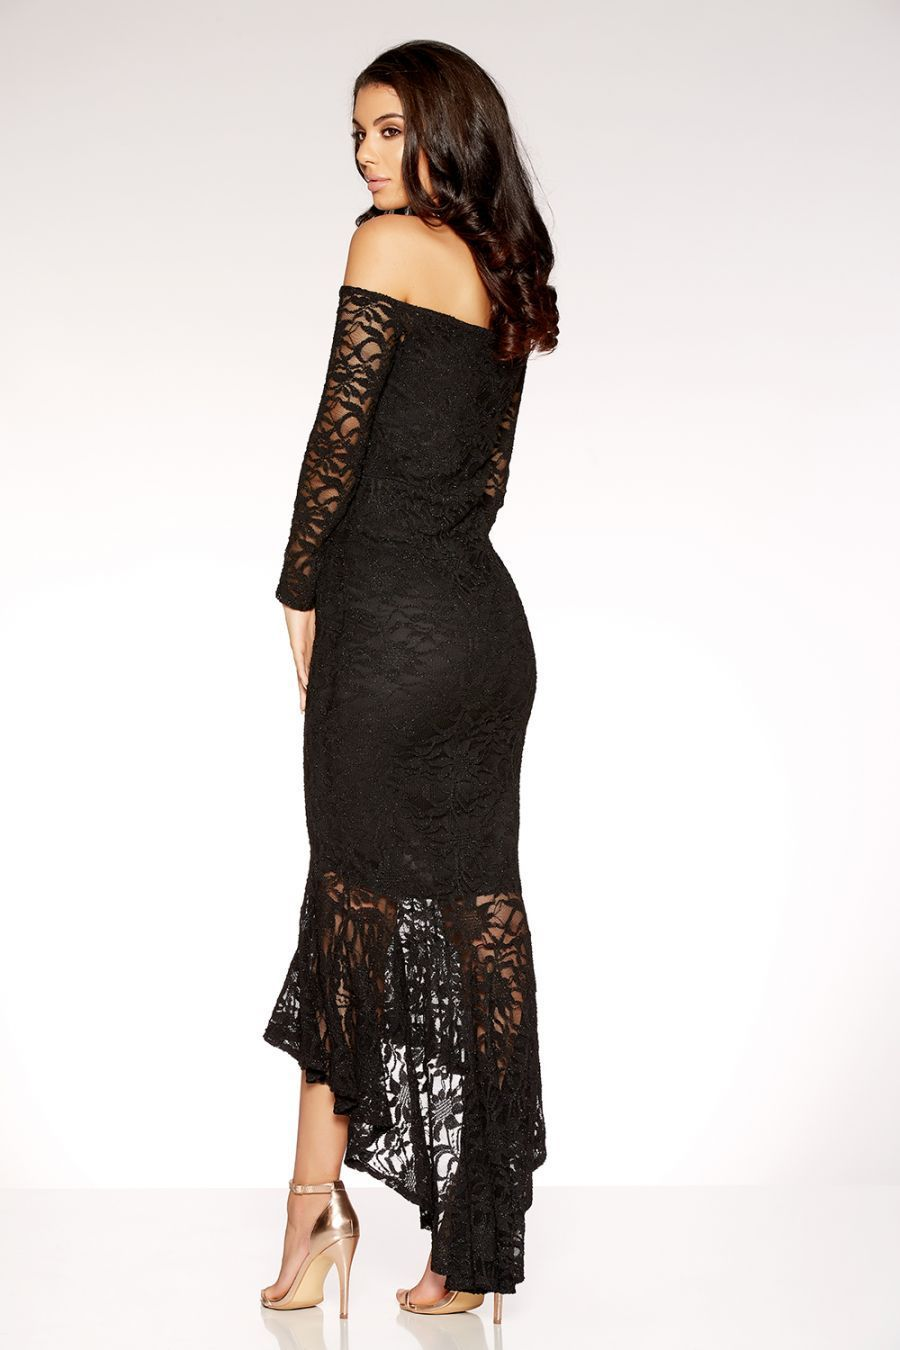 【海外限定】Quiz人気ドレス☆Black Glitter Lace V Bar Maxi Dr